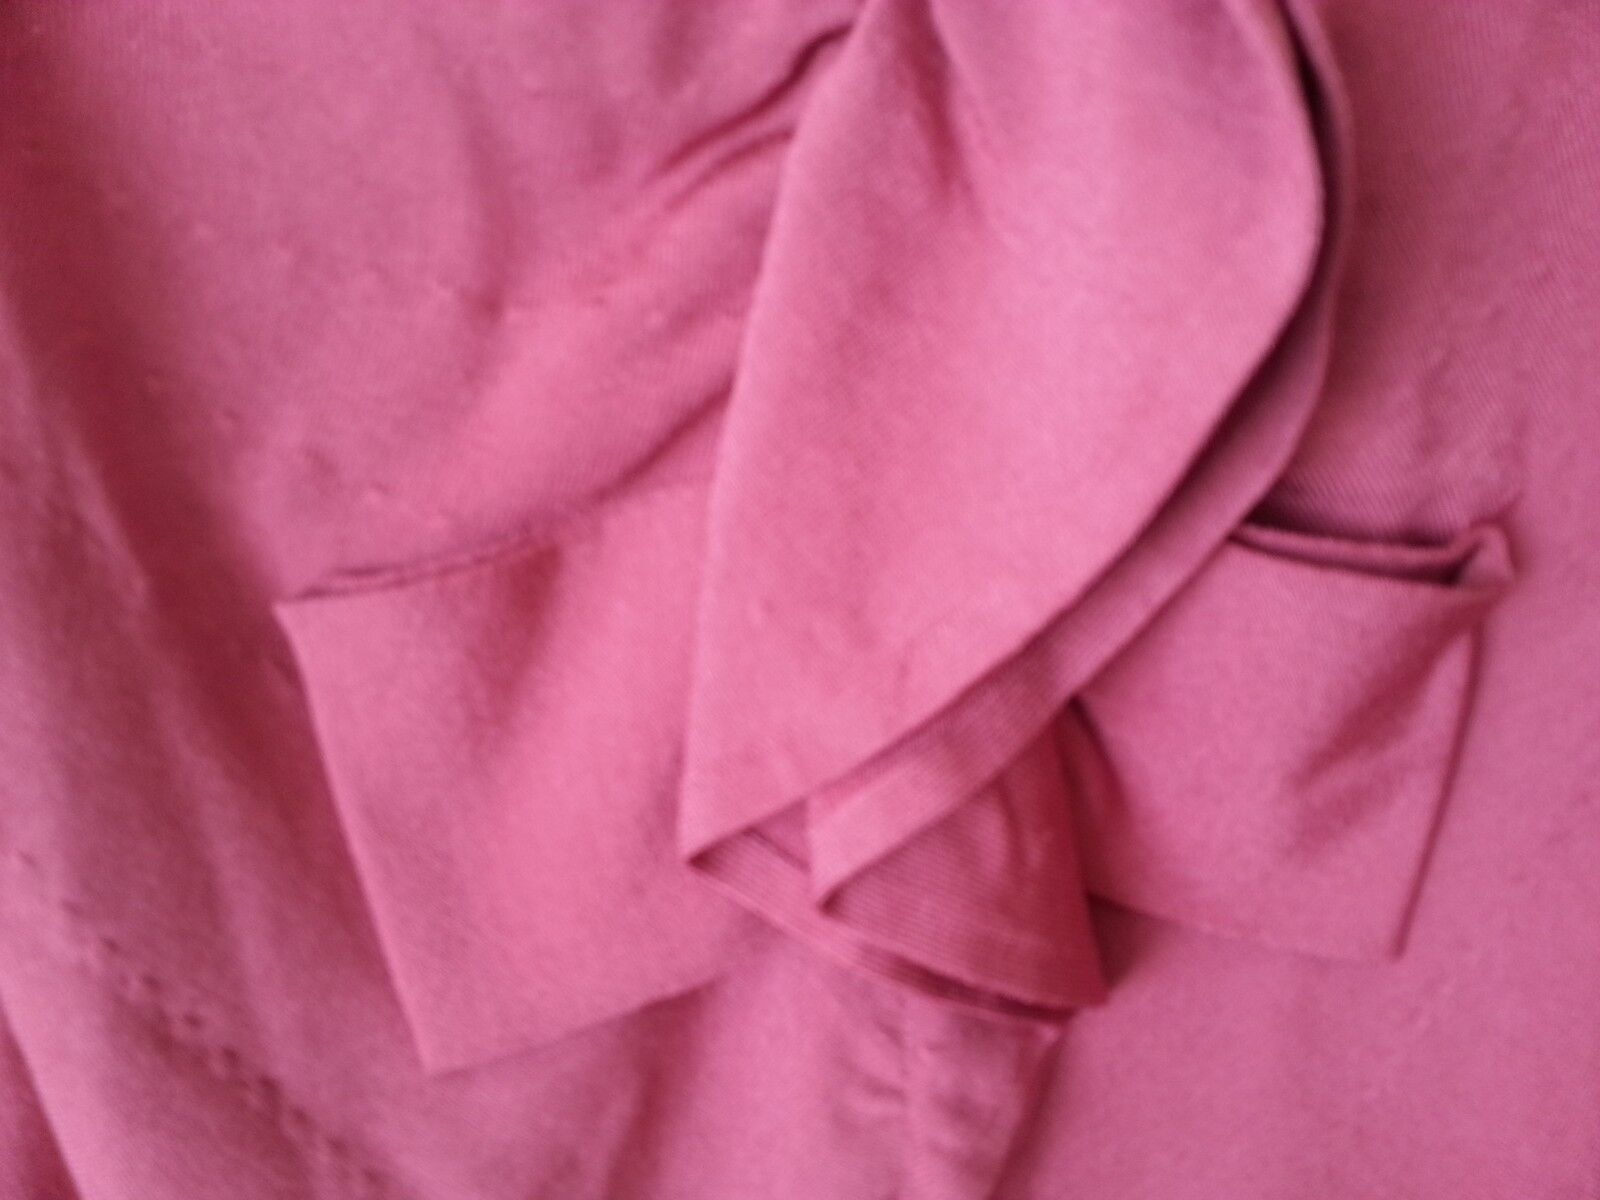 NEW   2720 VALENTINO COUTURE CARDIGAN SWEATER DARK PINK PINK PINK TOP MADE IN ITALY SZ S f44283